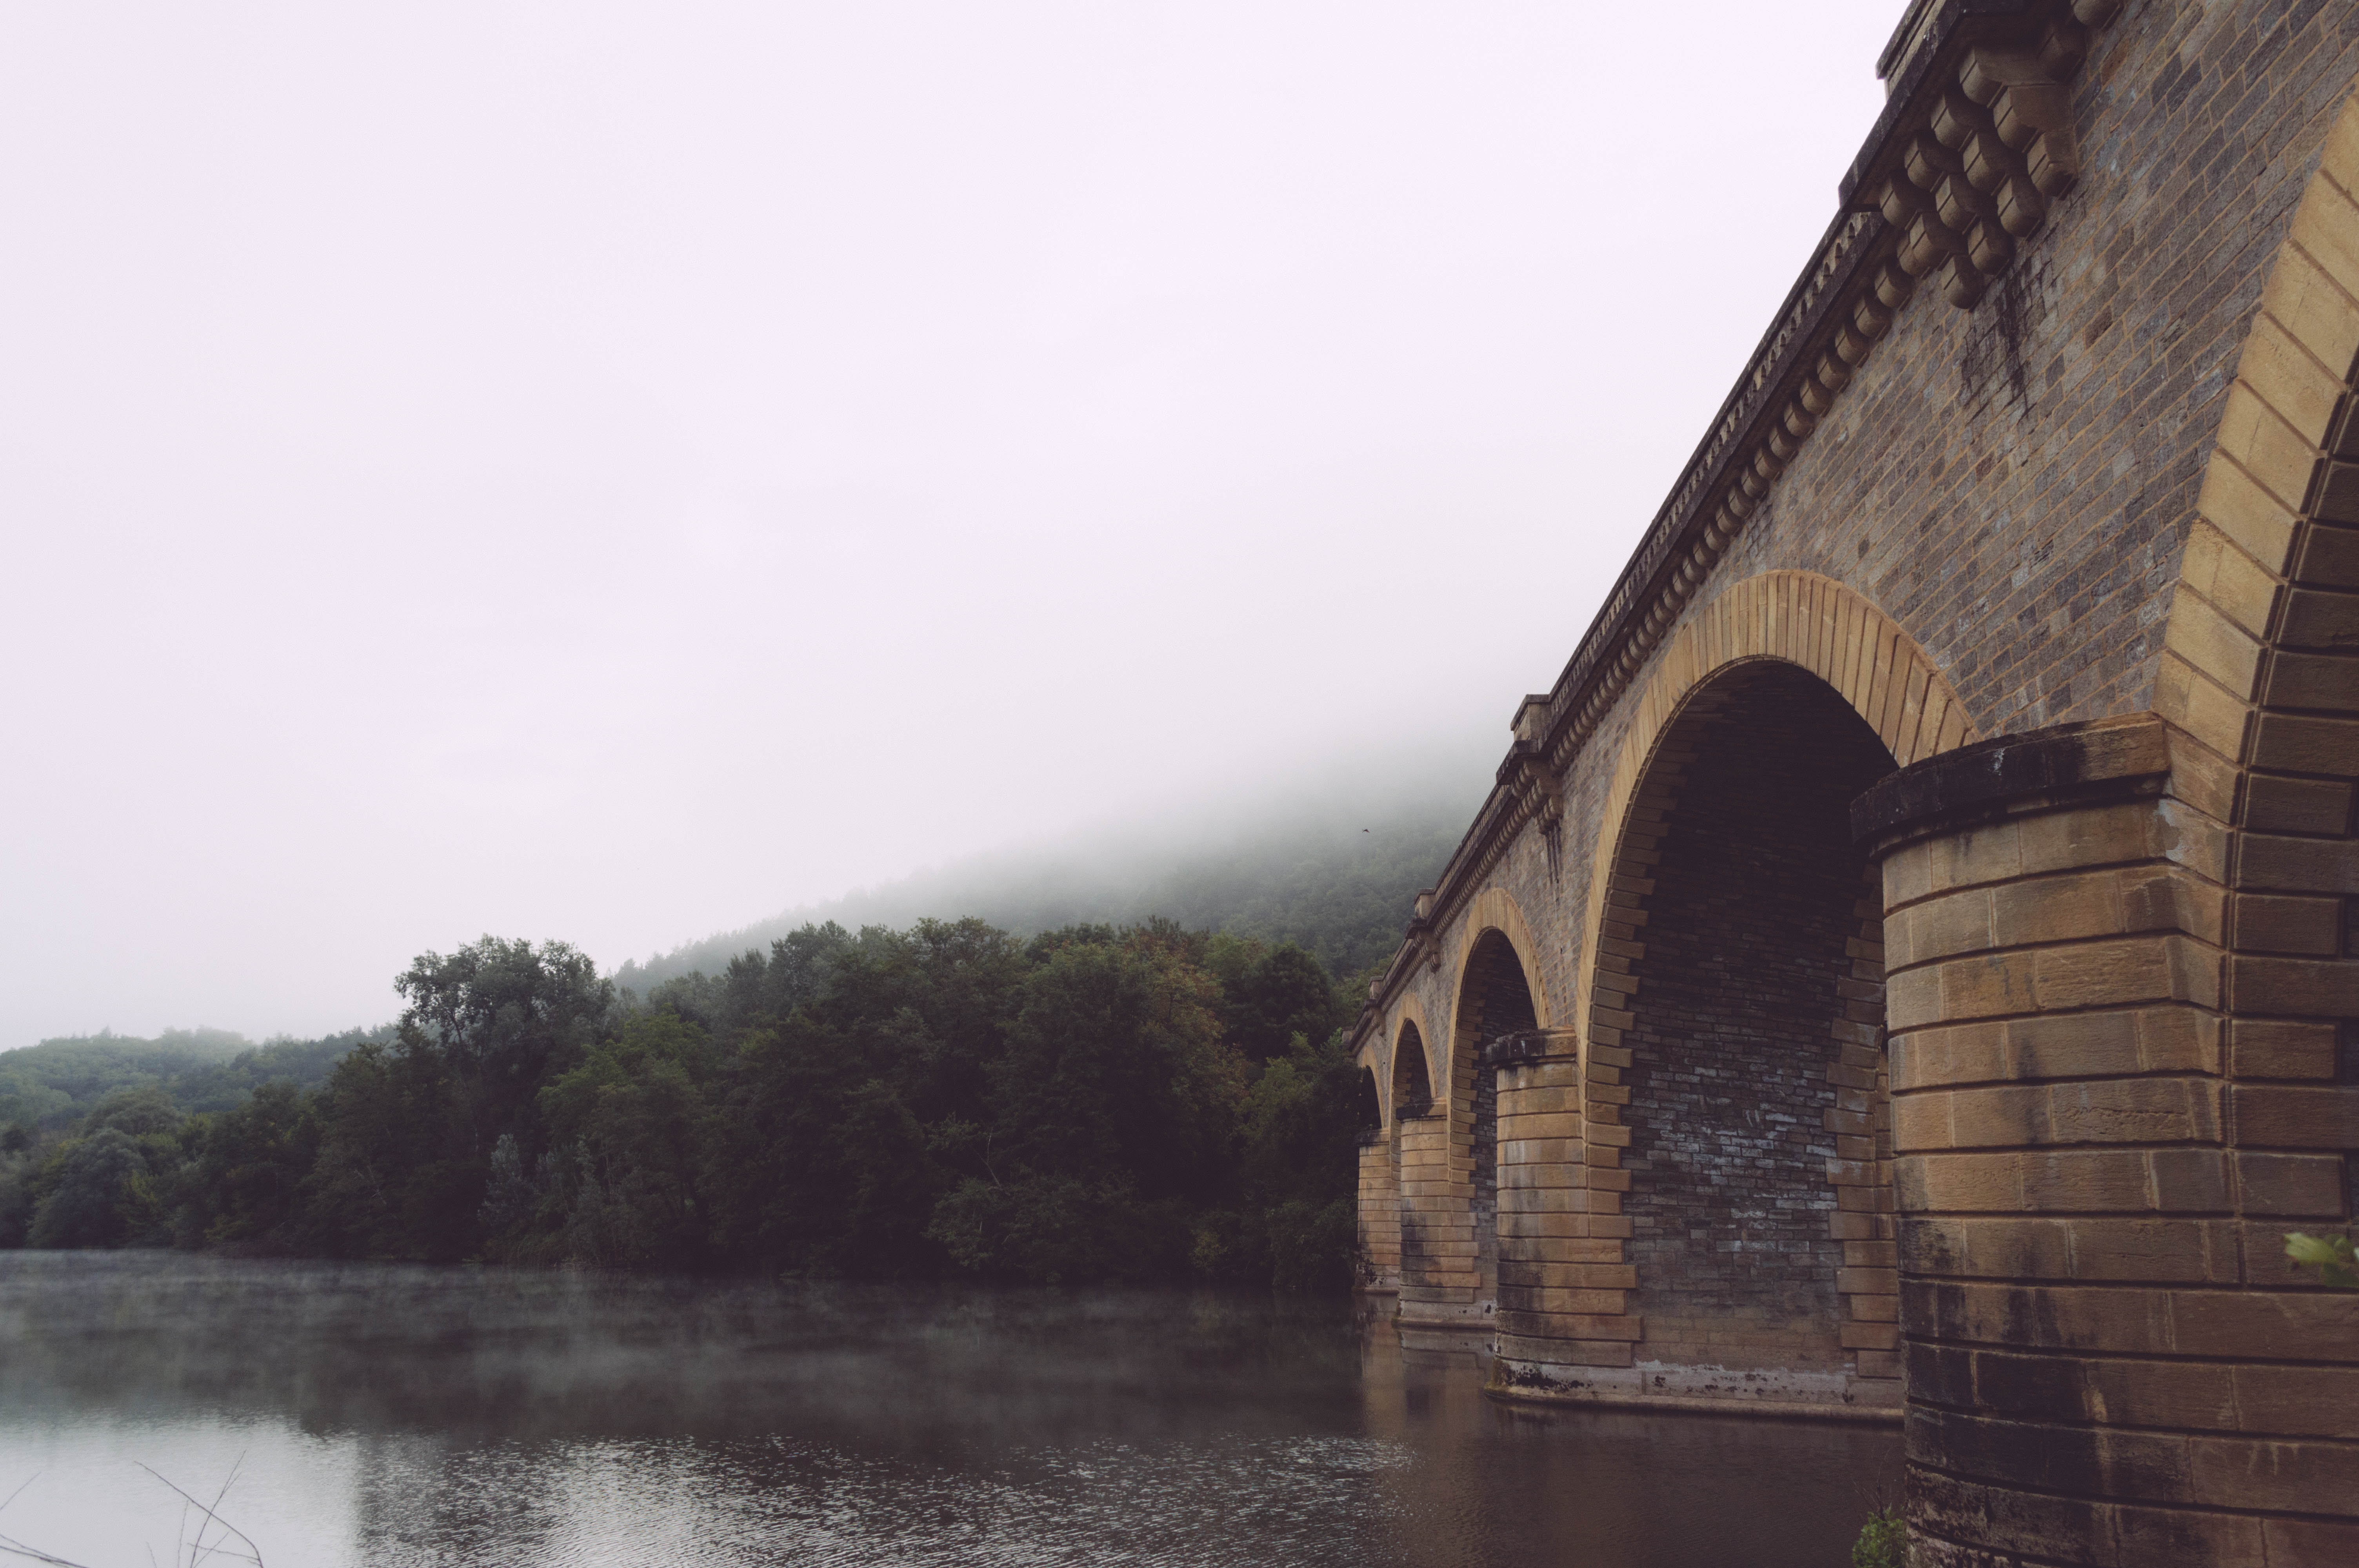 Brick archways in a bridge over a river